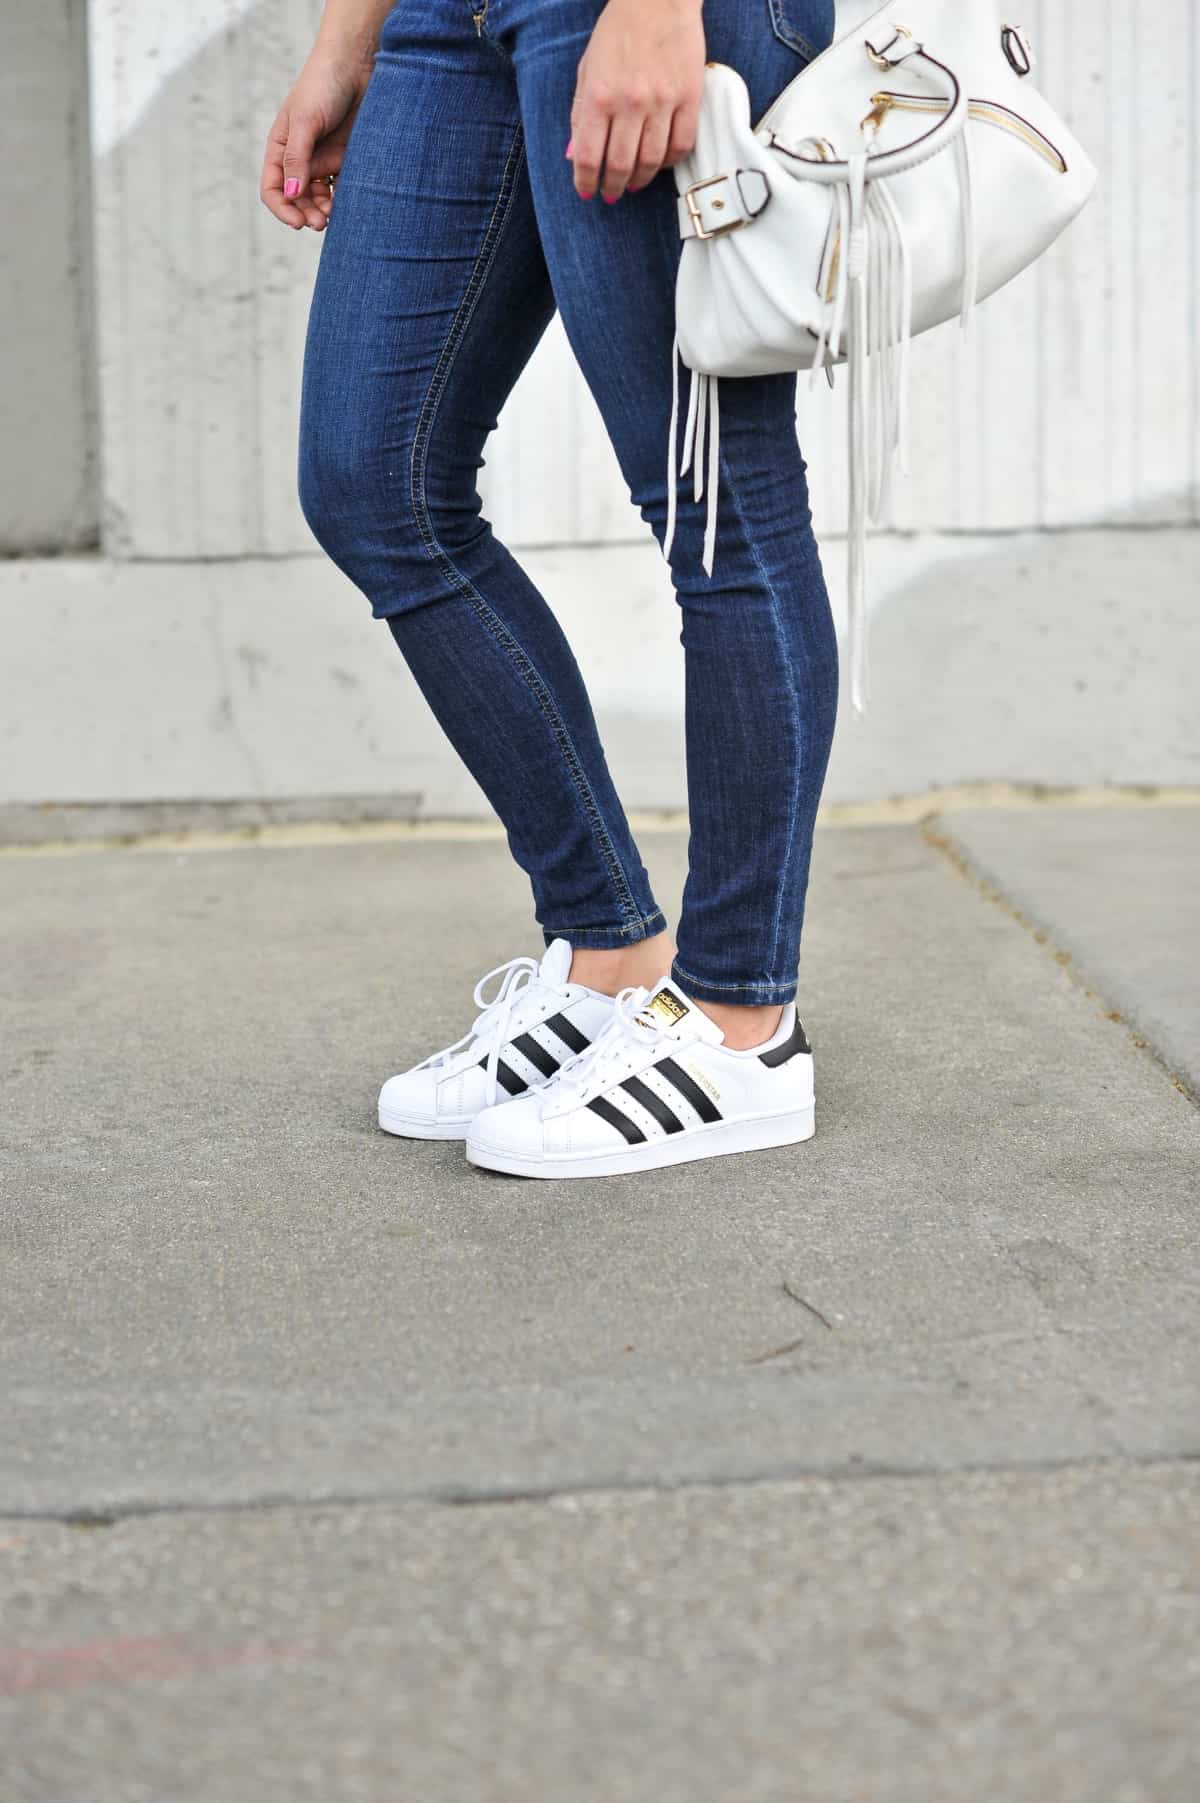 Adidas superstars with jeans